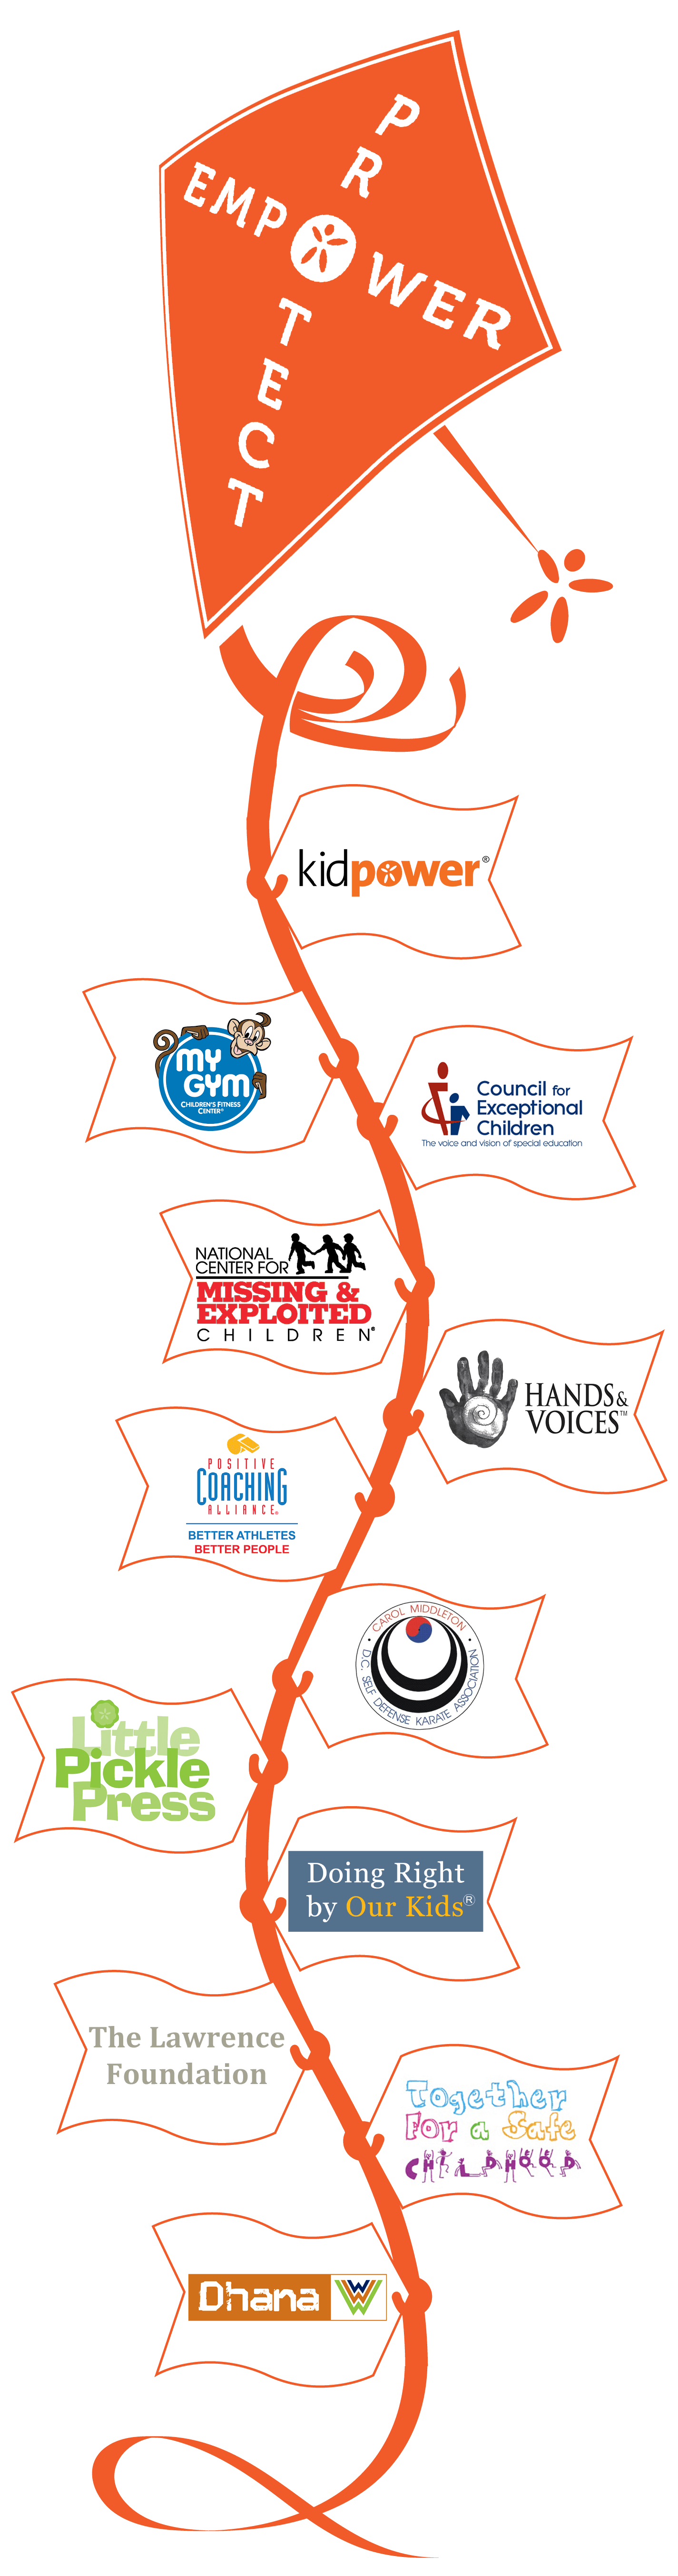 Partners in Protection | International Child Protection Month - September